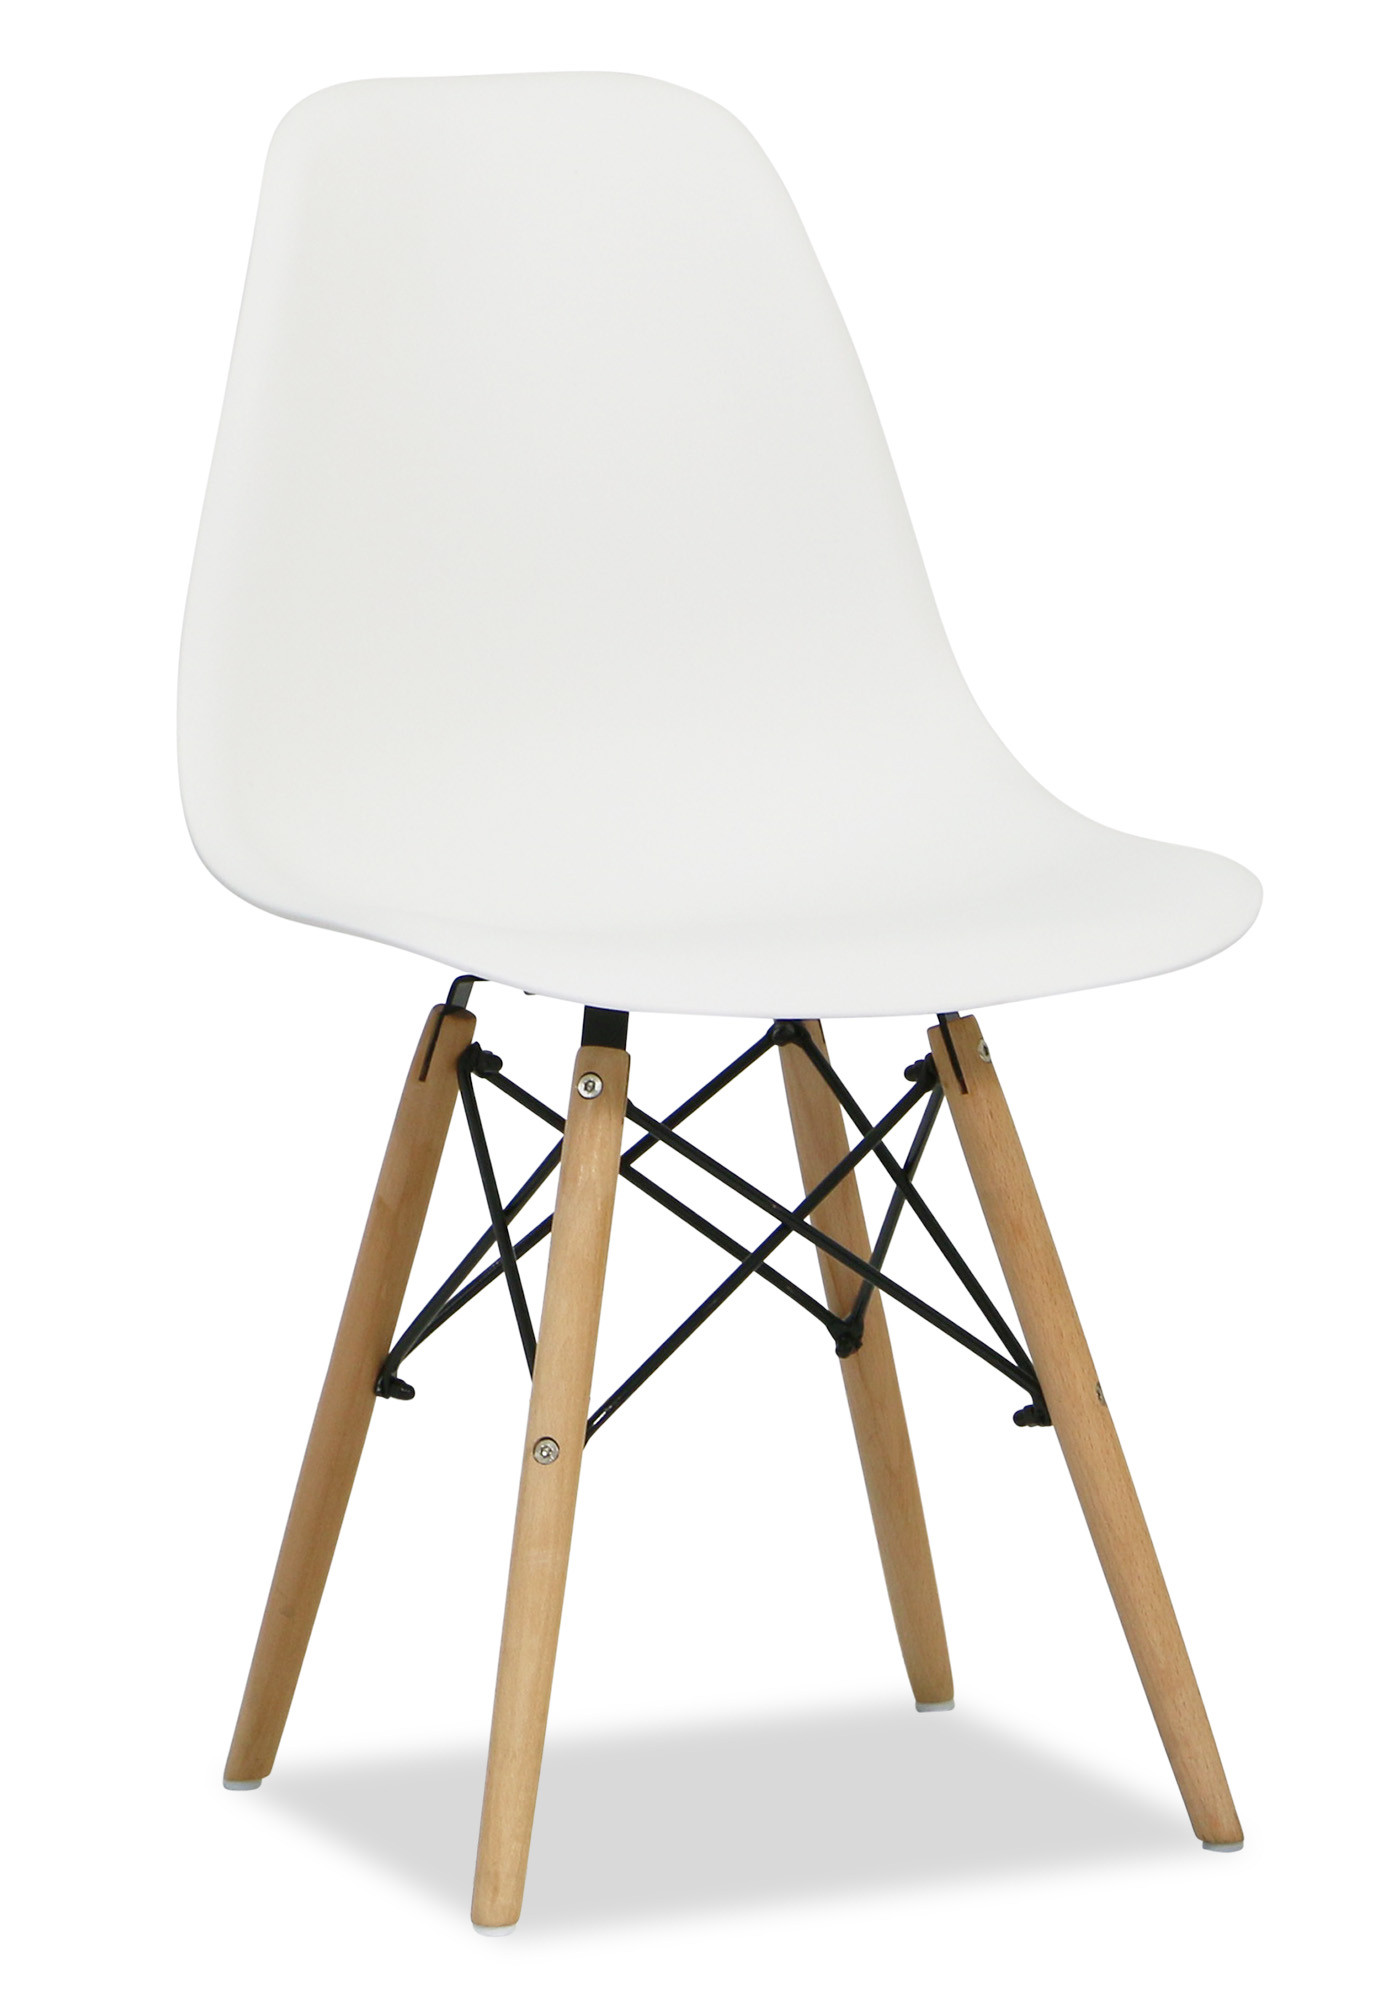 Eames white replica designer chair dining chairs for Imitation designer chairs